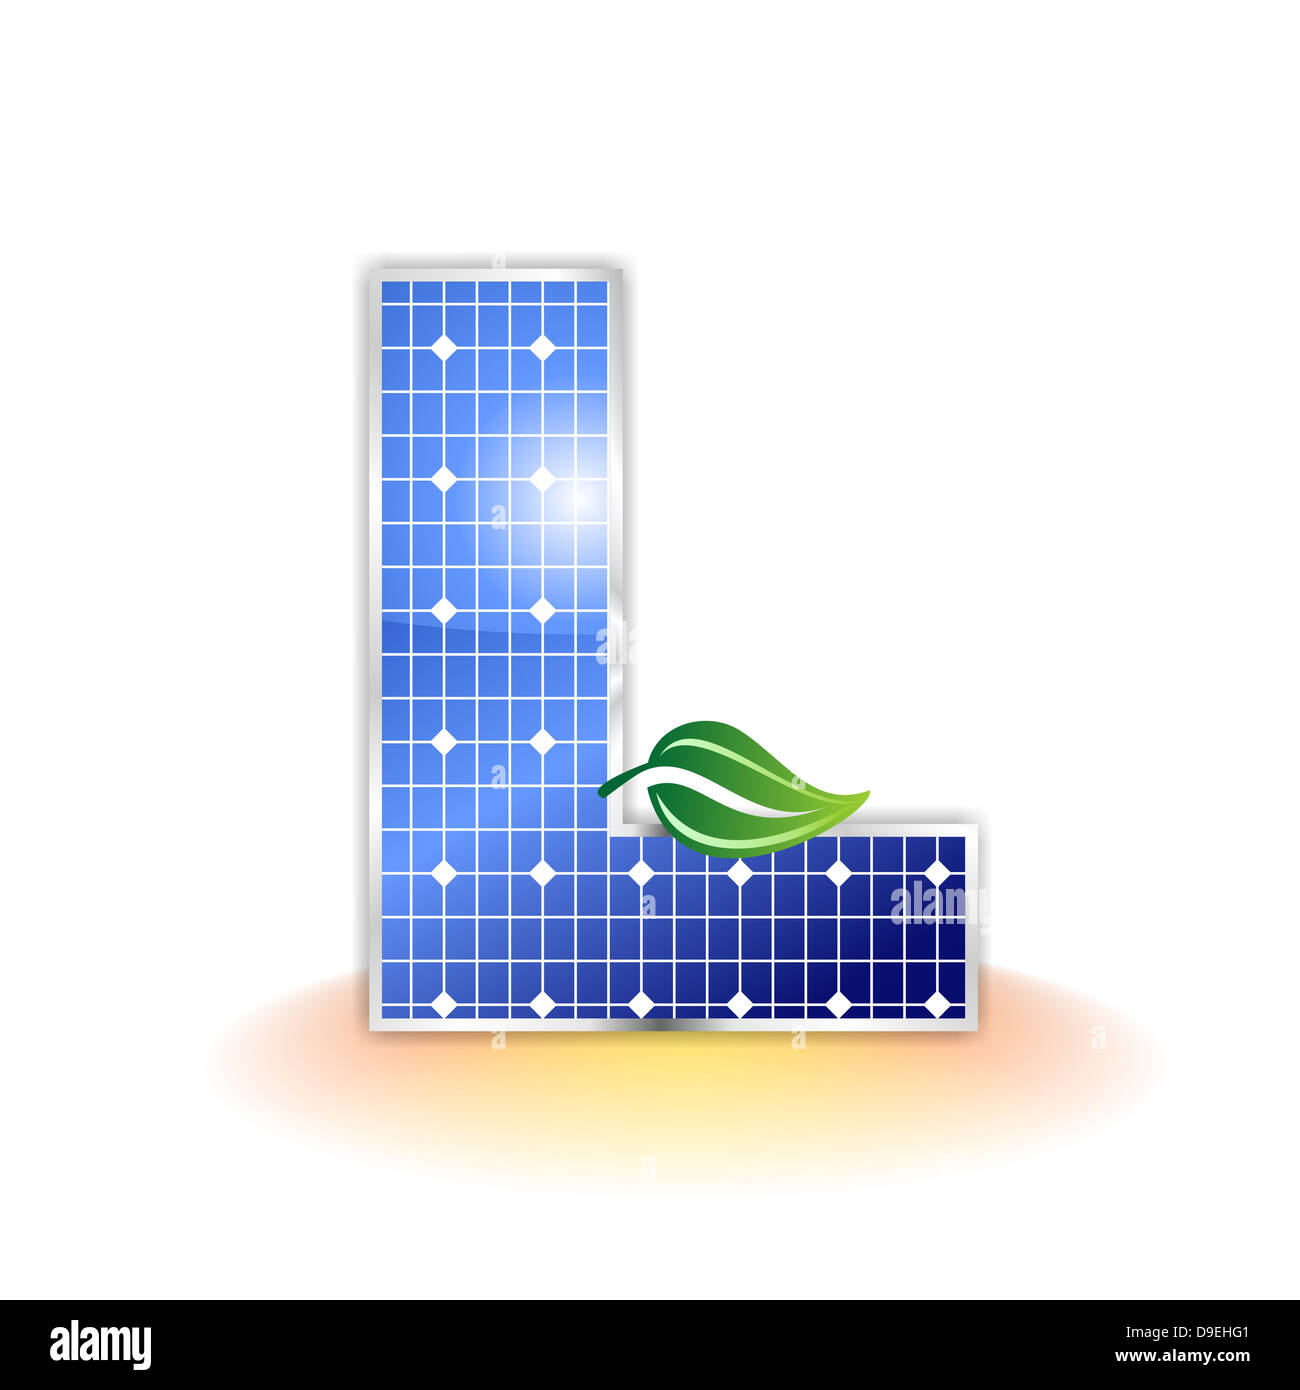 L, capital, letter L, solar panel, illustration, icon, texture - Stock Image